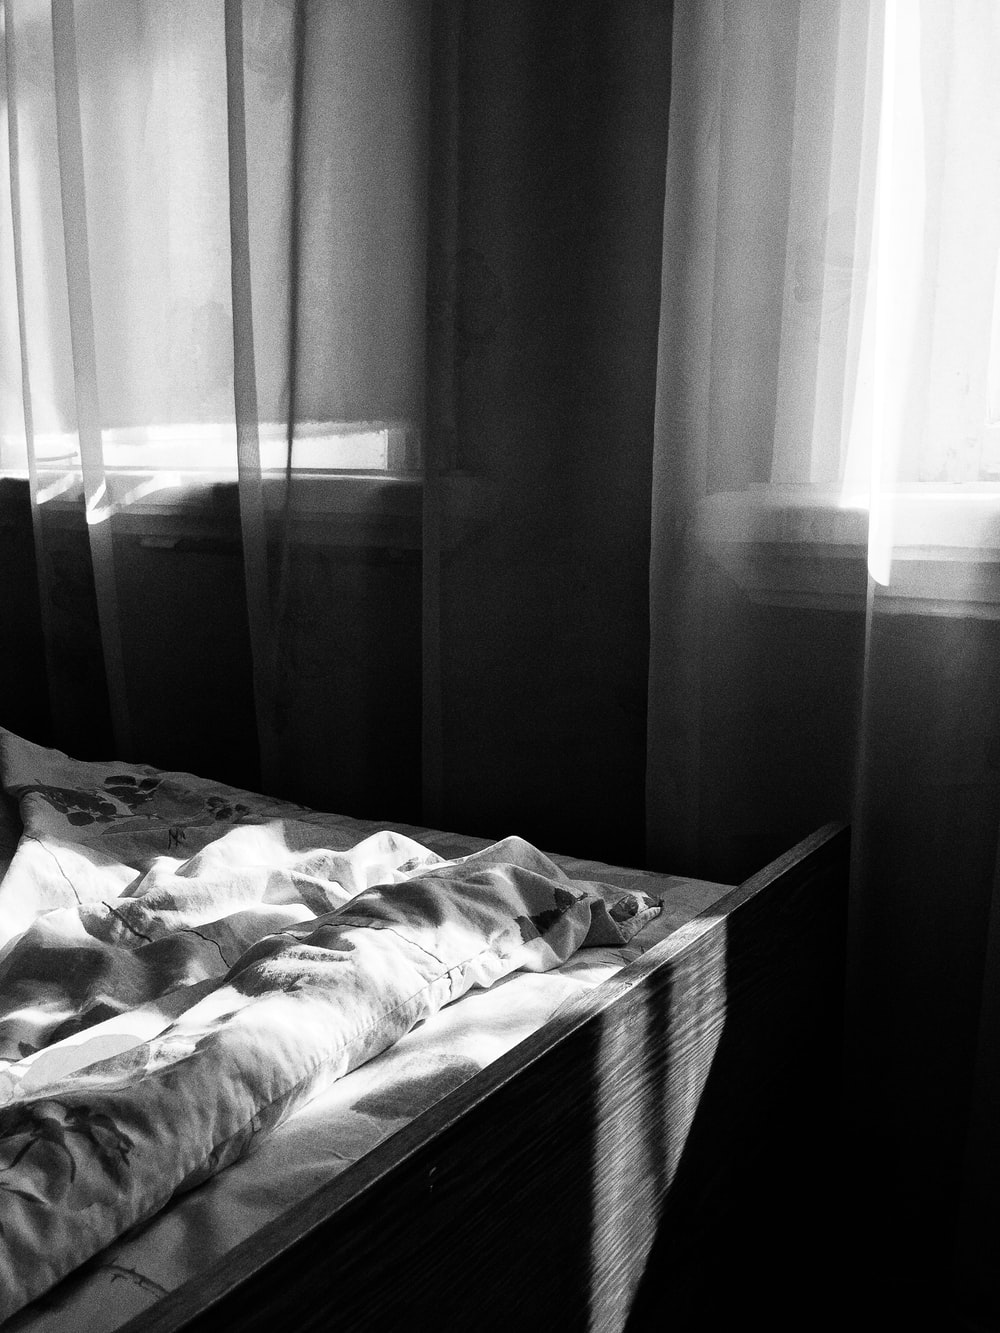 grayscale photography of curtain in room